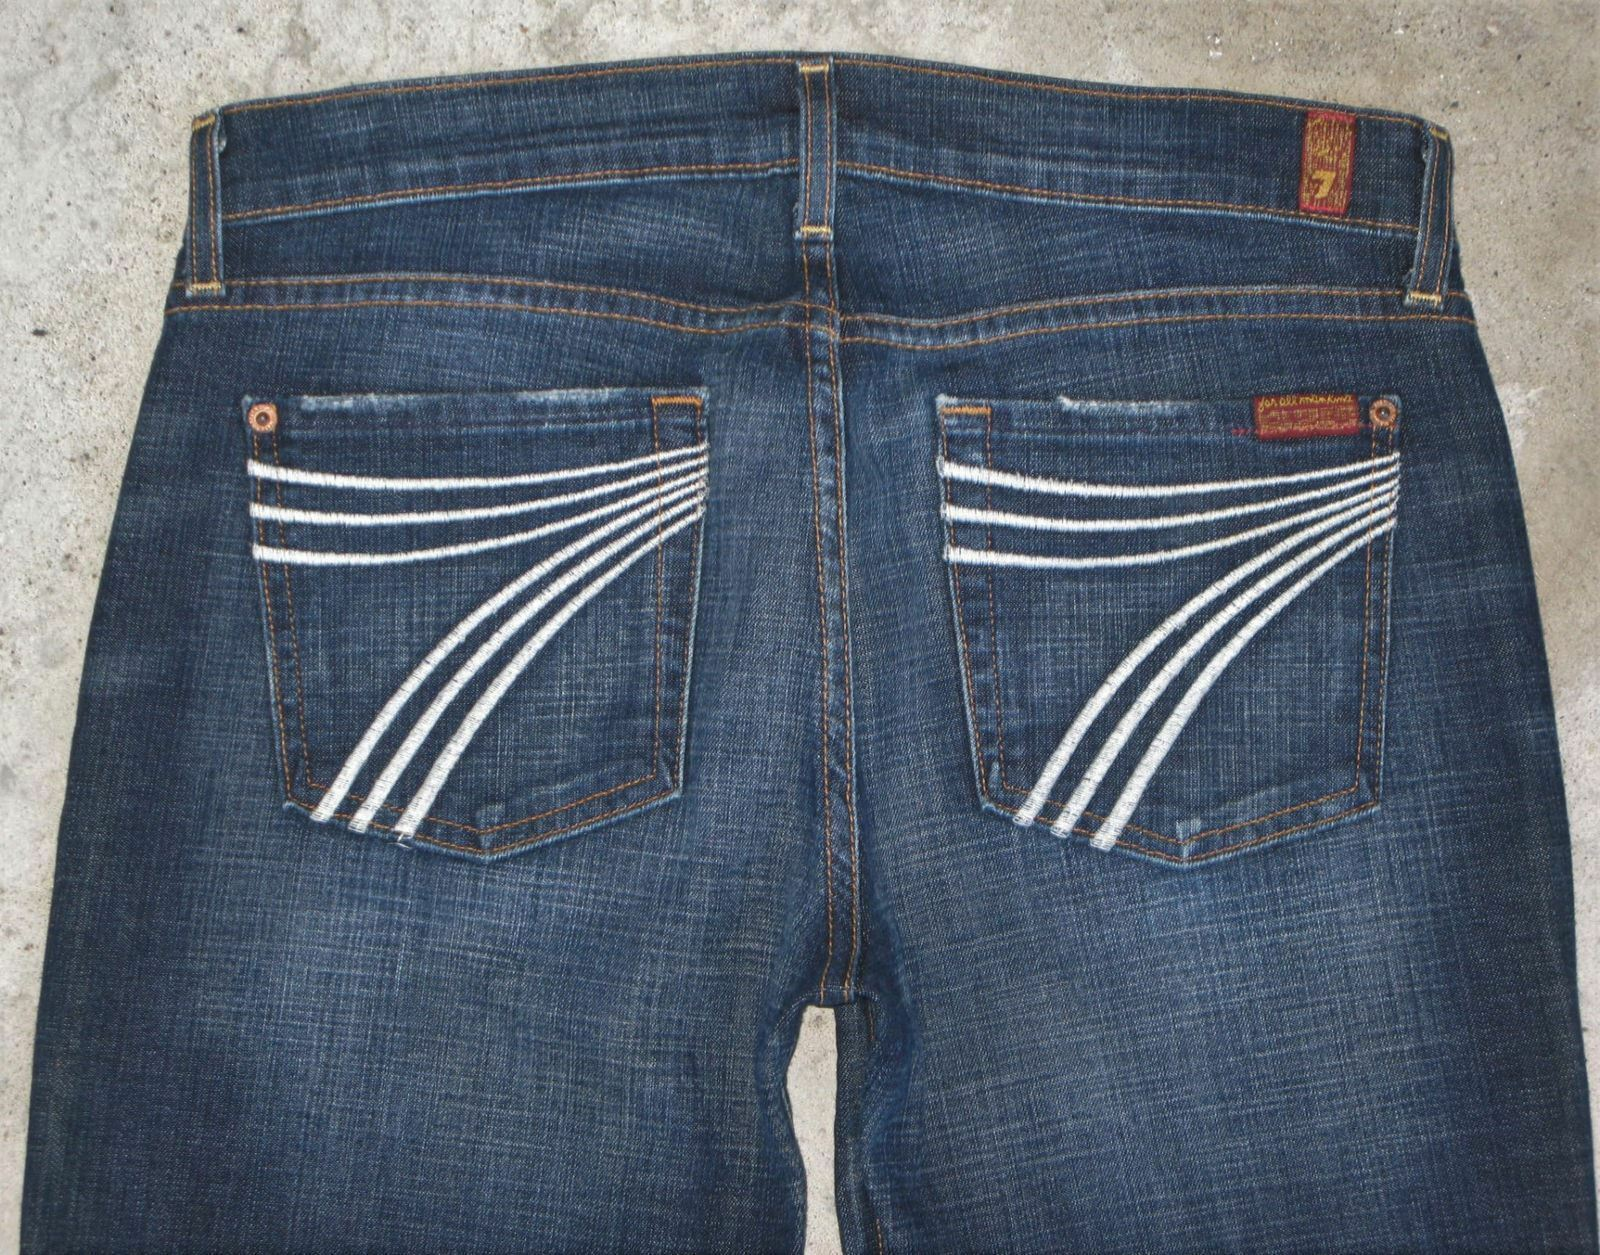 7 For all Mankind Dojo Jeans Sz 29 Low Flare Distressed w Stretch USA made